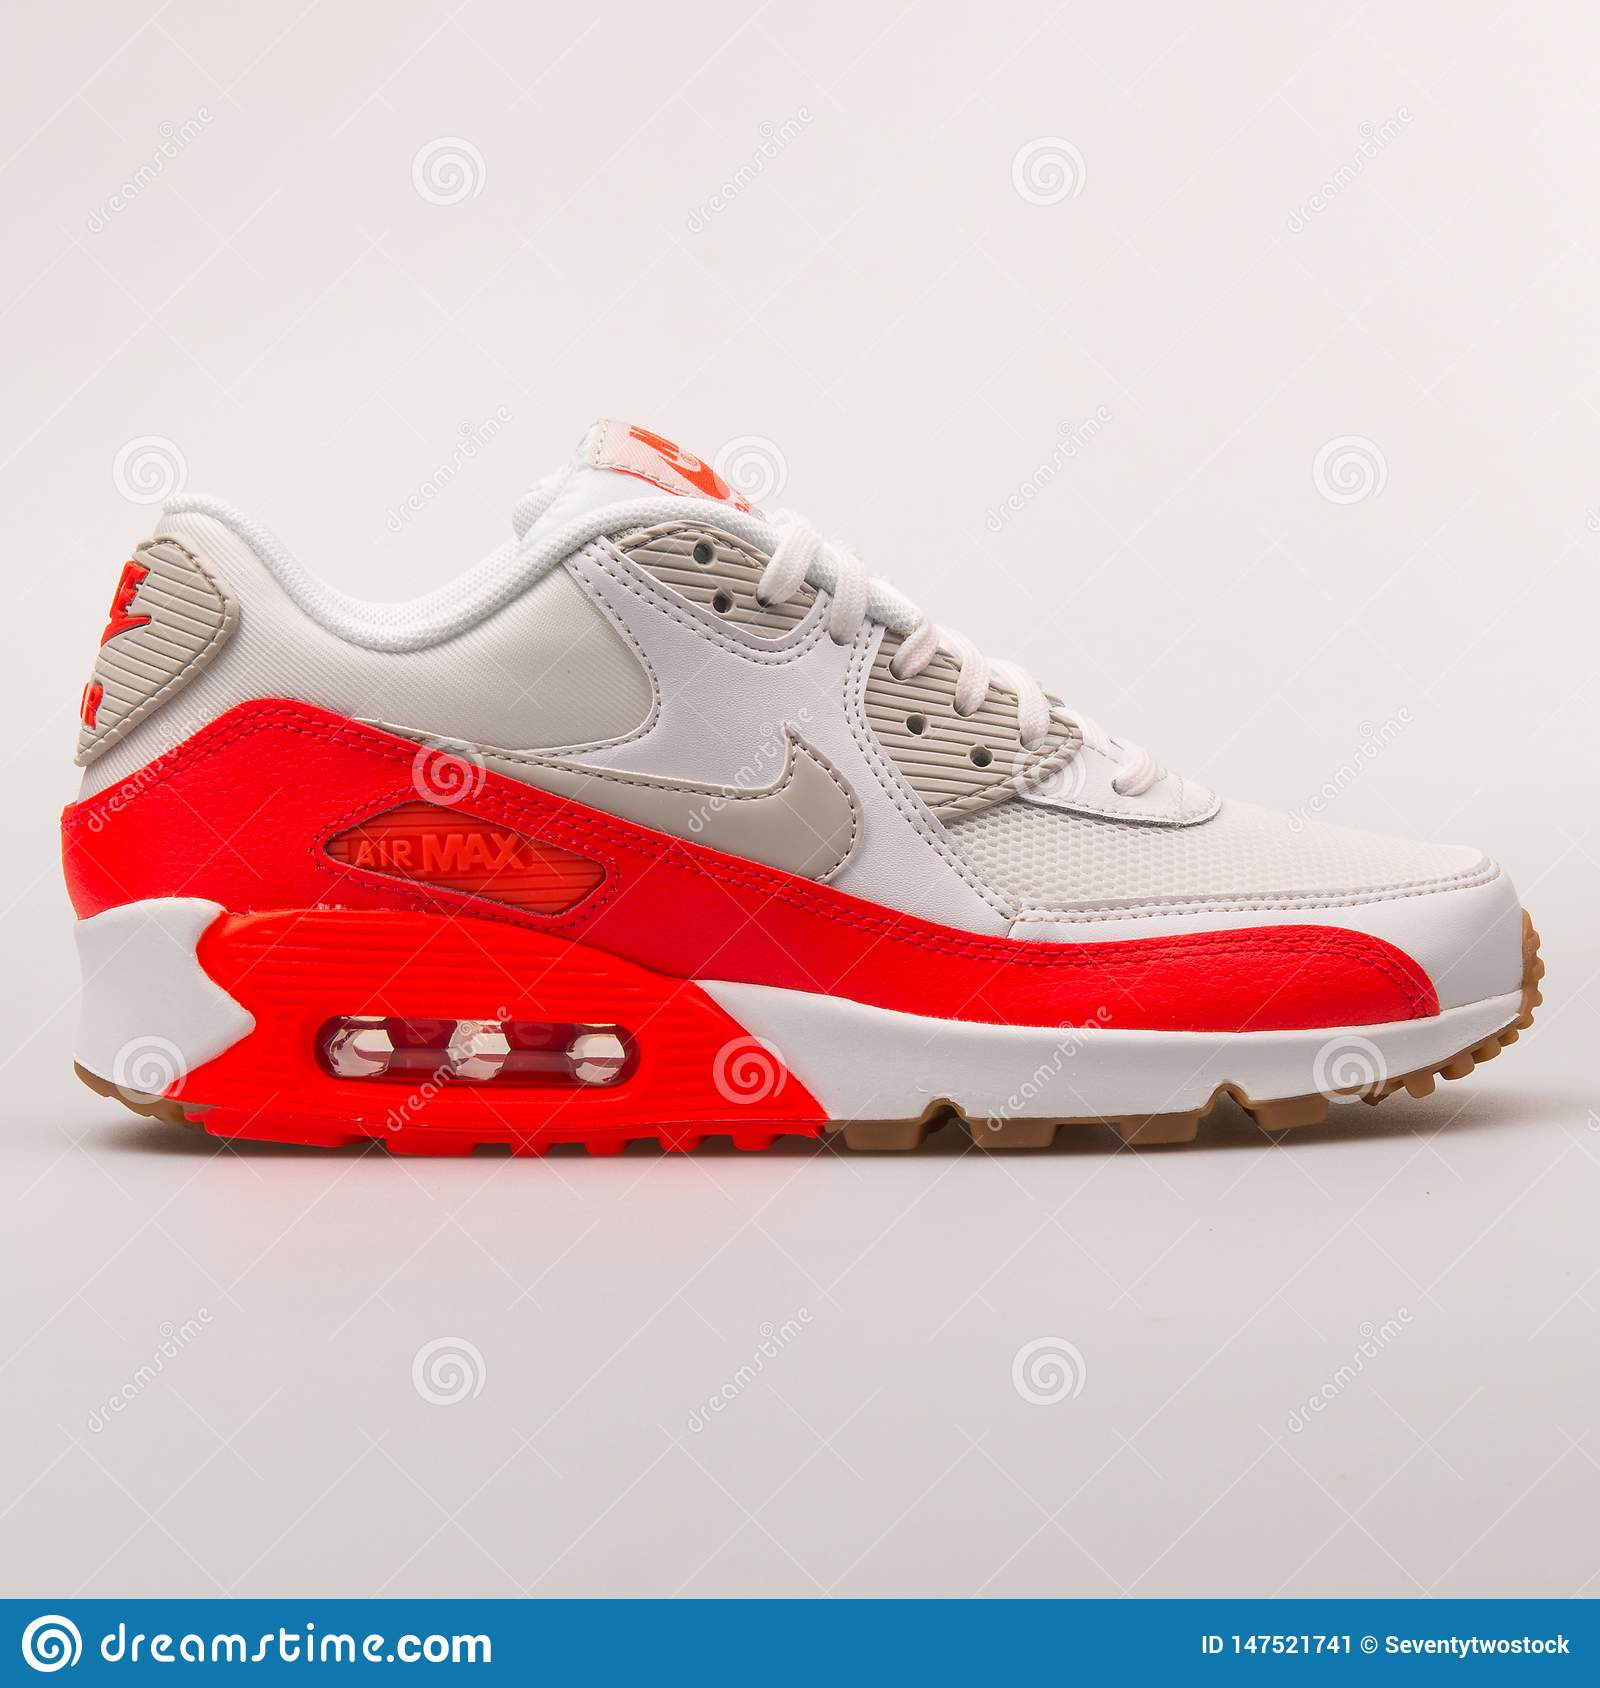 acheter pas cher 3f079 1a2dd Nike Air Max 90 Essential White And Red Sneaker Editorial ...